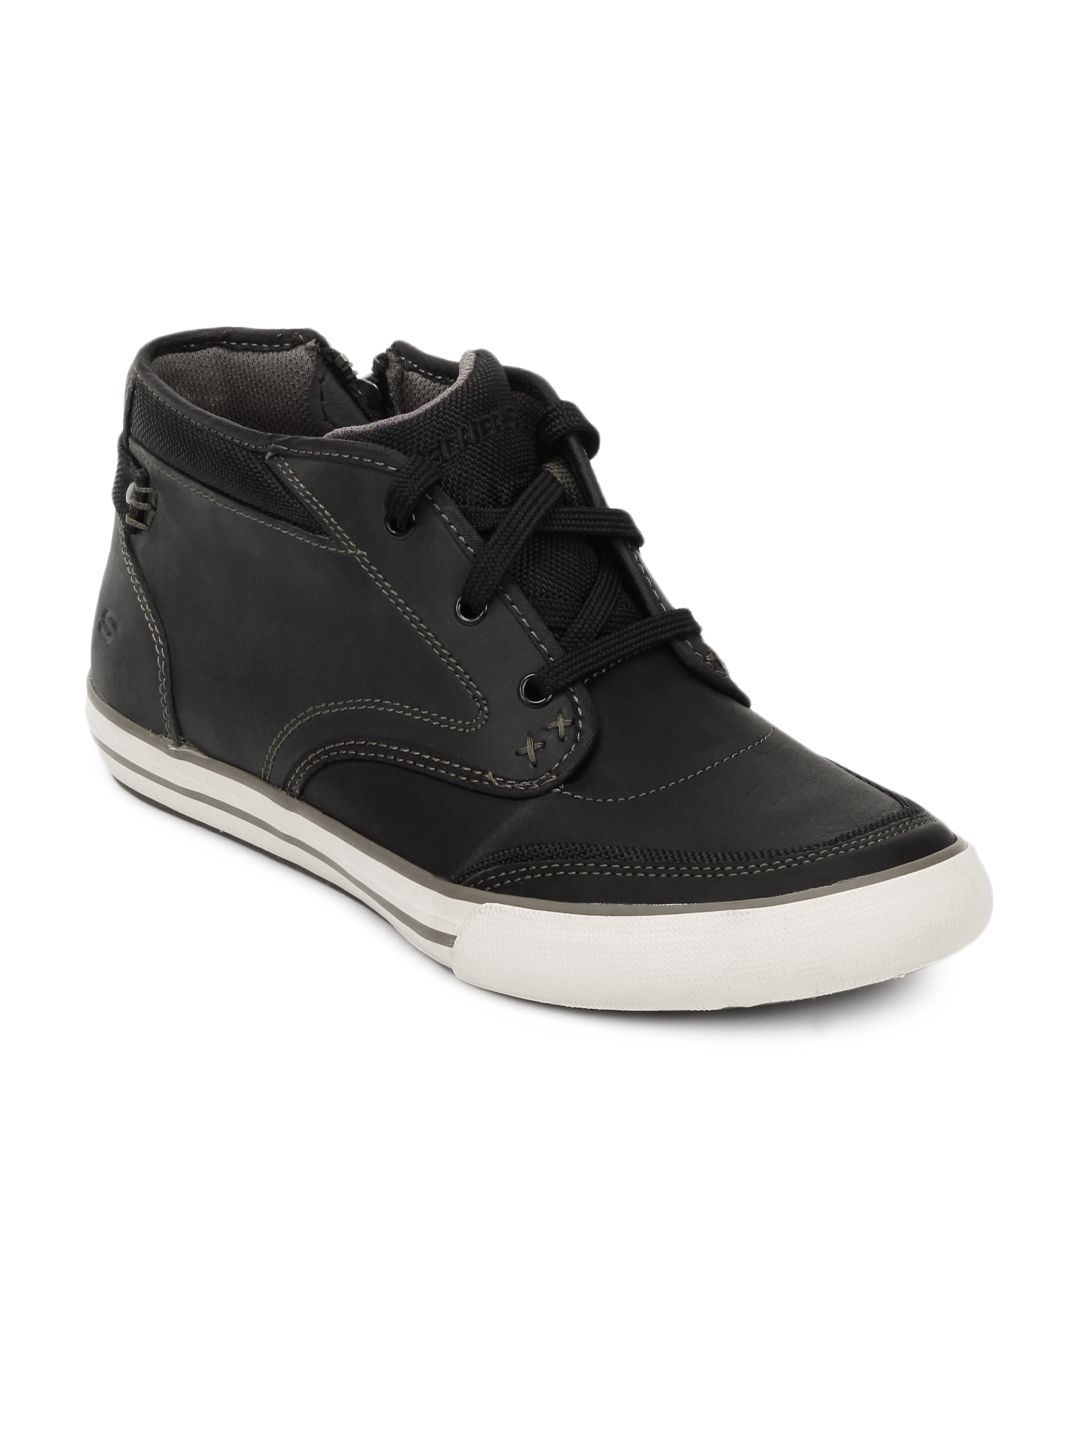 Skechers Men #Shoes #Chocolate #Casual Rs.3499 | Dapper | Pinterest |  Skechers, Men's fashion and Man style